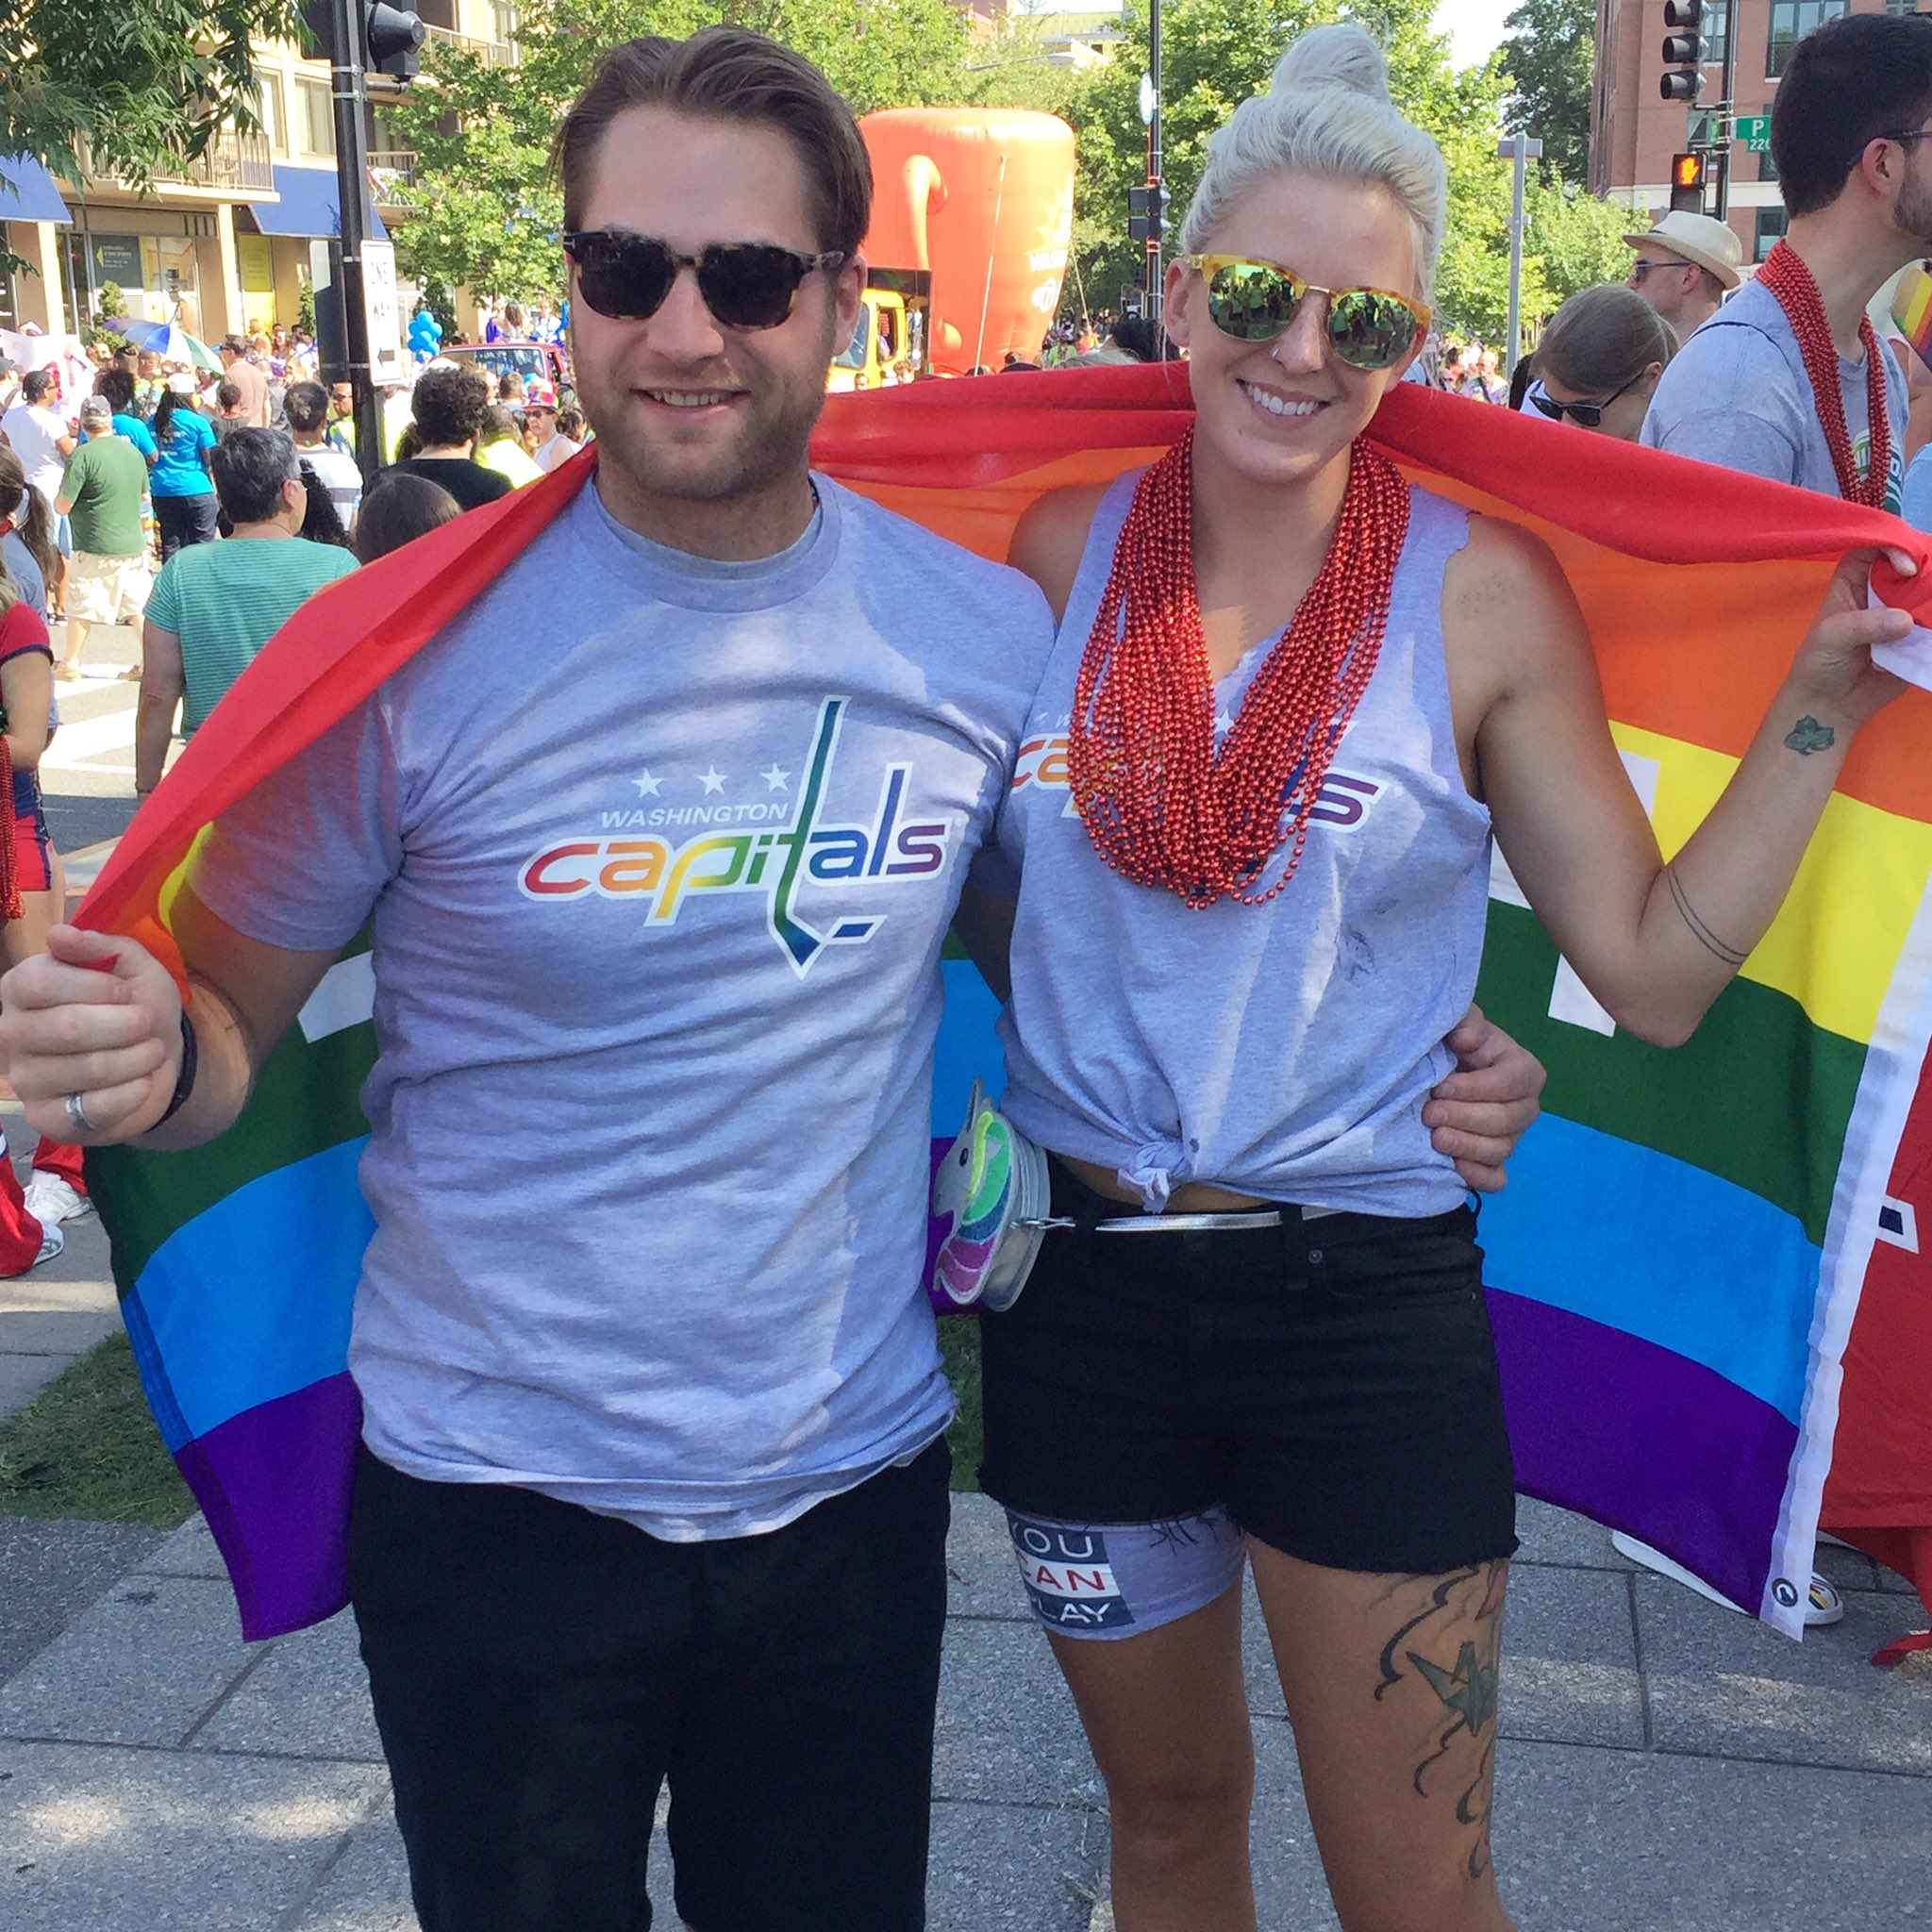 Washington Capitals On Twitter Awesome To Have Braden Holtby And His Wife Brandy At Today S Capitalpridedc Parade Dcpride2017 Rocktherainbow